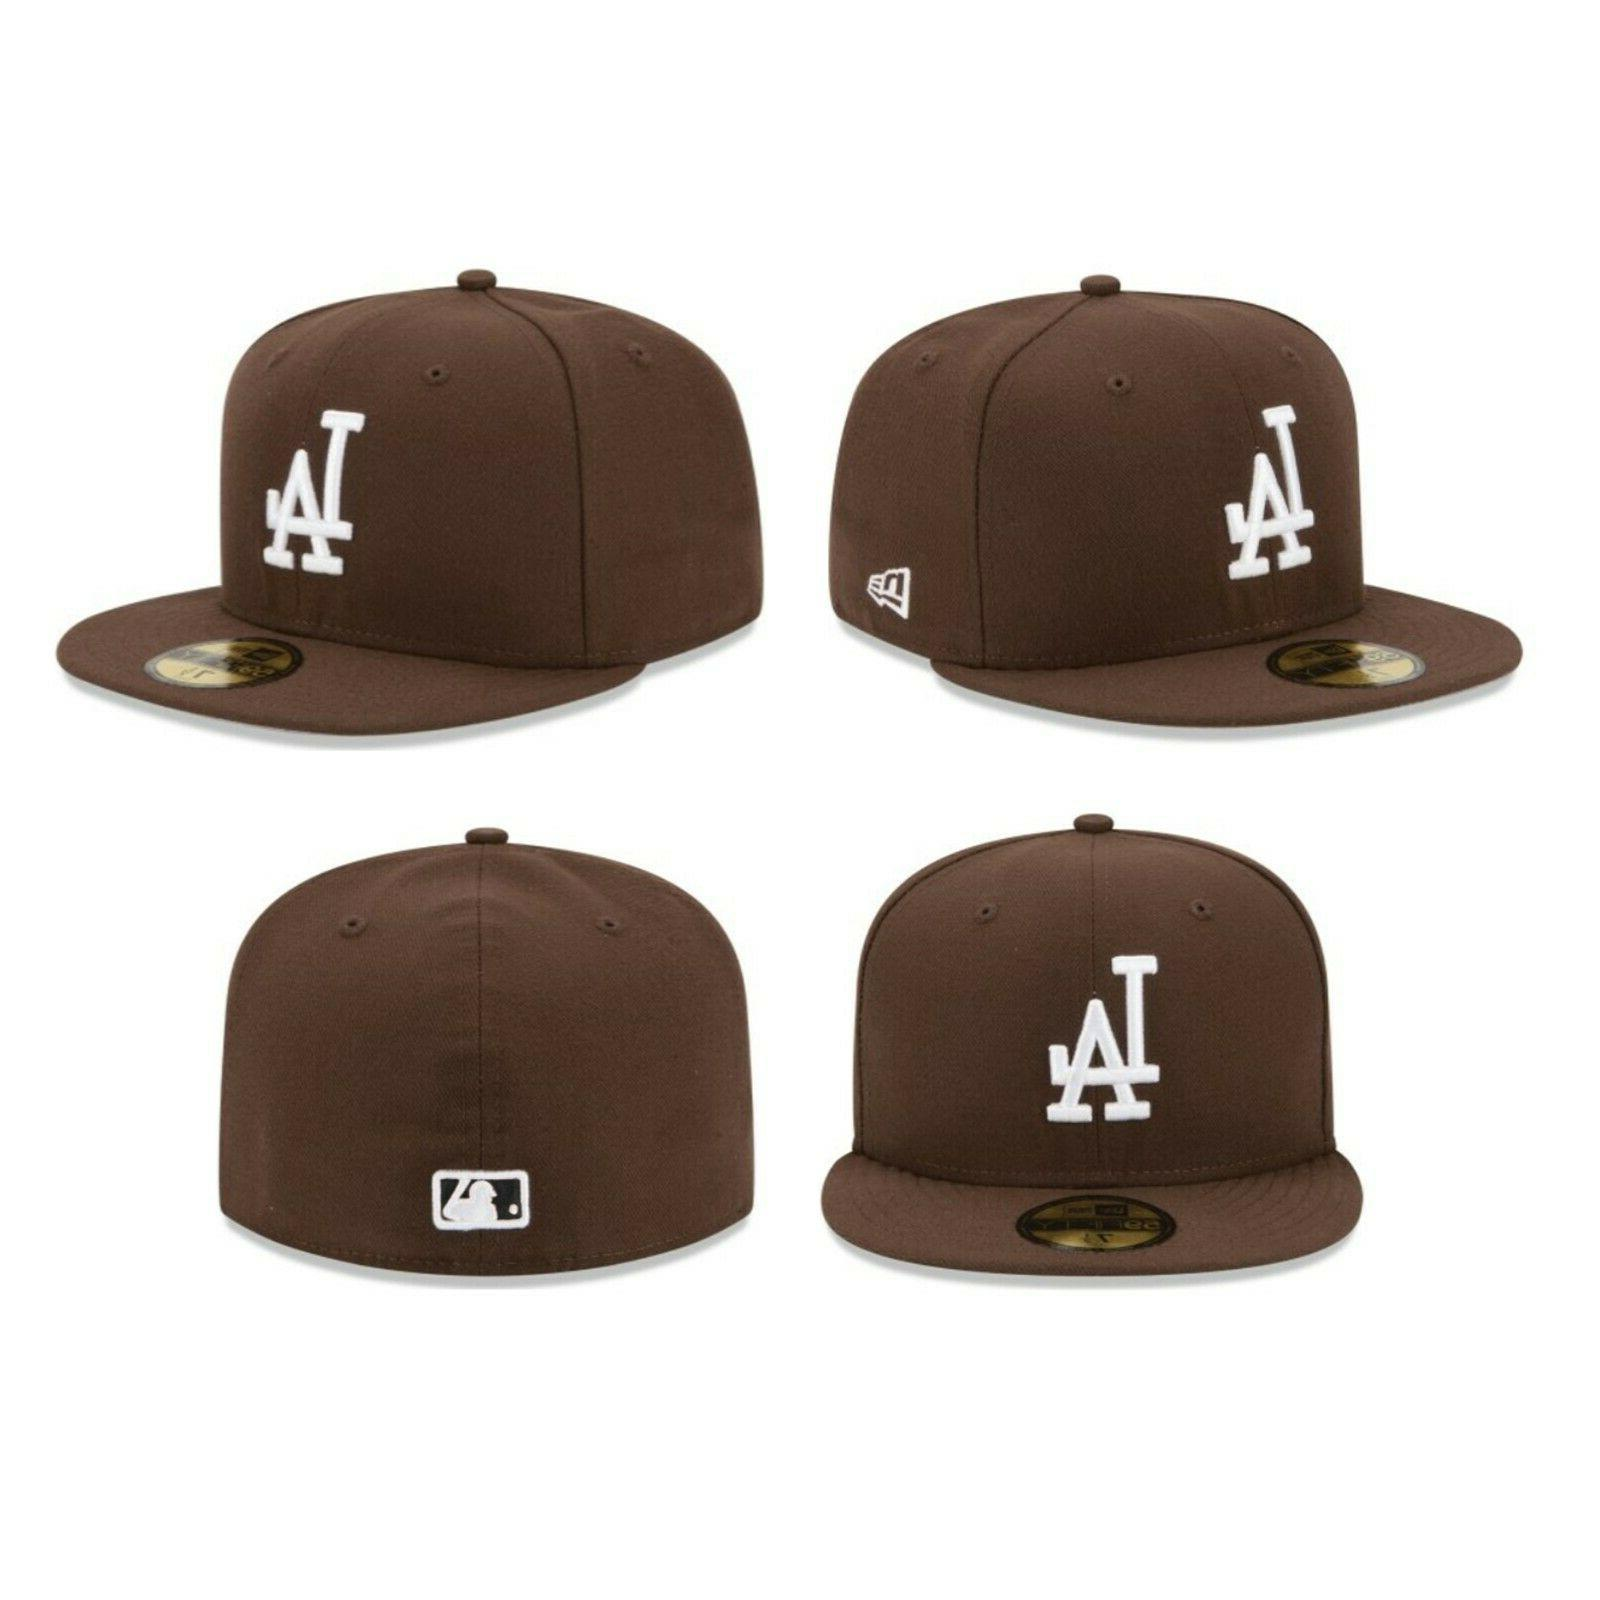 Los Dodgers LAD MLB 59FIFTY Fitted Cap 5950 Hat